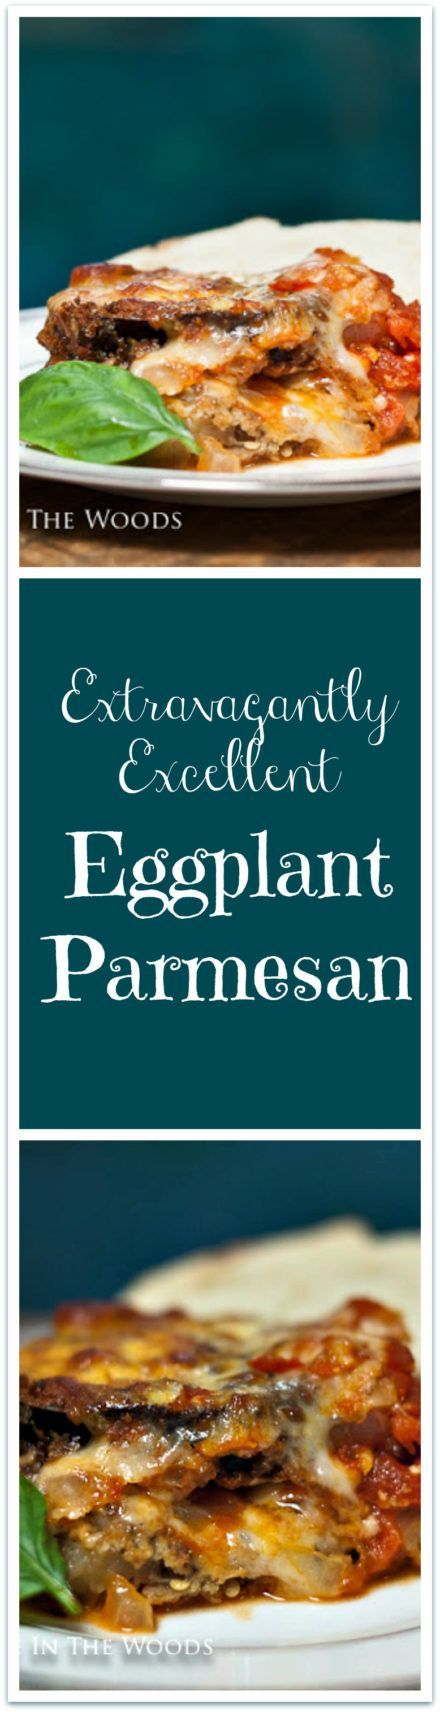 Extravagantly Excellent Eggplant Parmesan is one of the best dishes I've ever made!